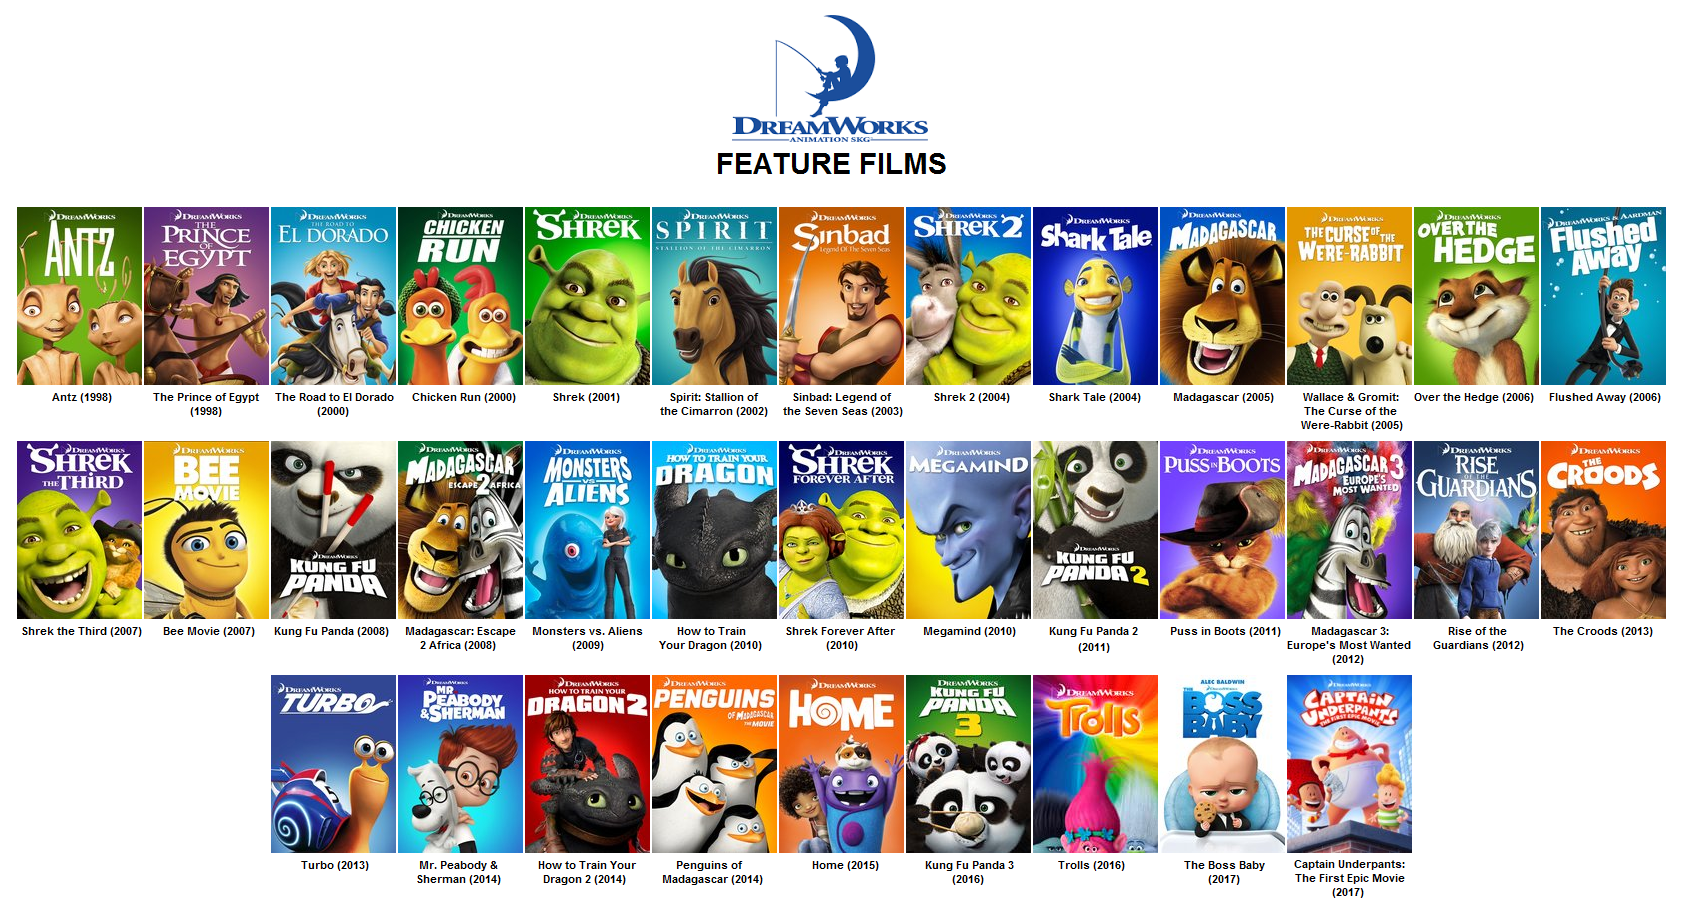 image dreamworks animation feature filmspng idea wiki